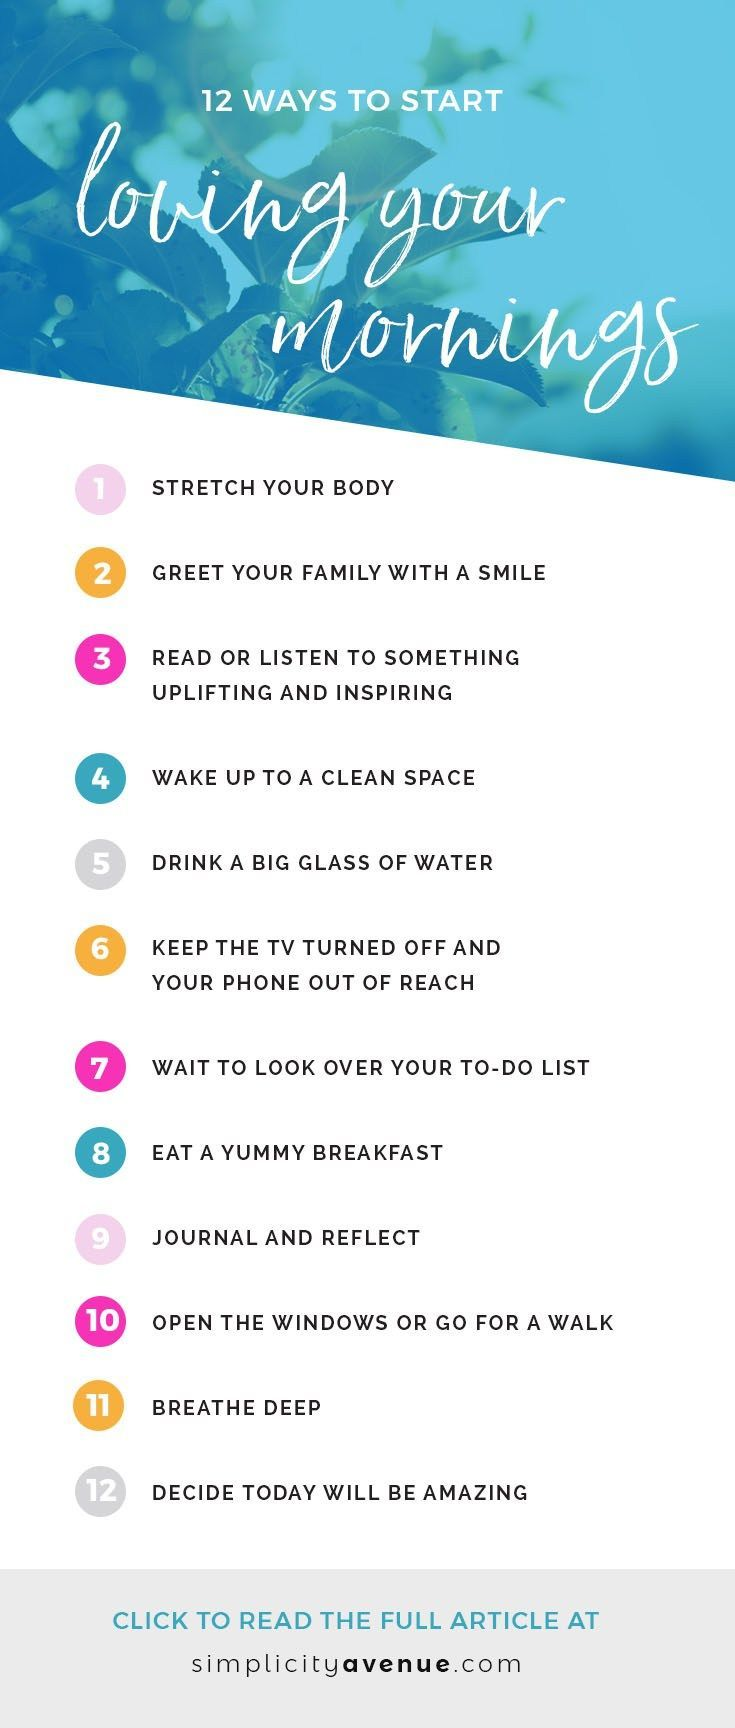 Simple ways to bring joy to your morning routine. Today's a new day. Make it amazing!